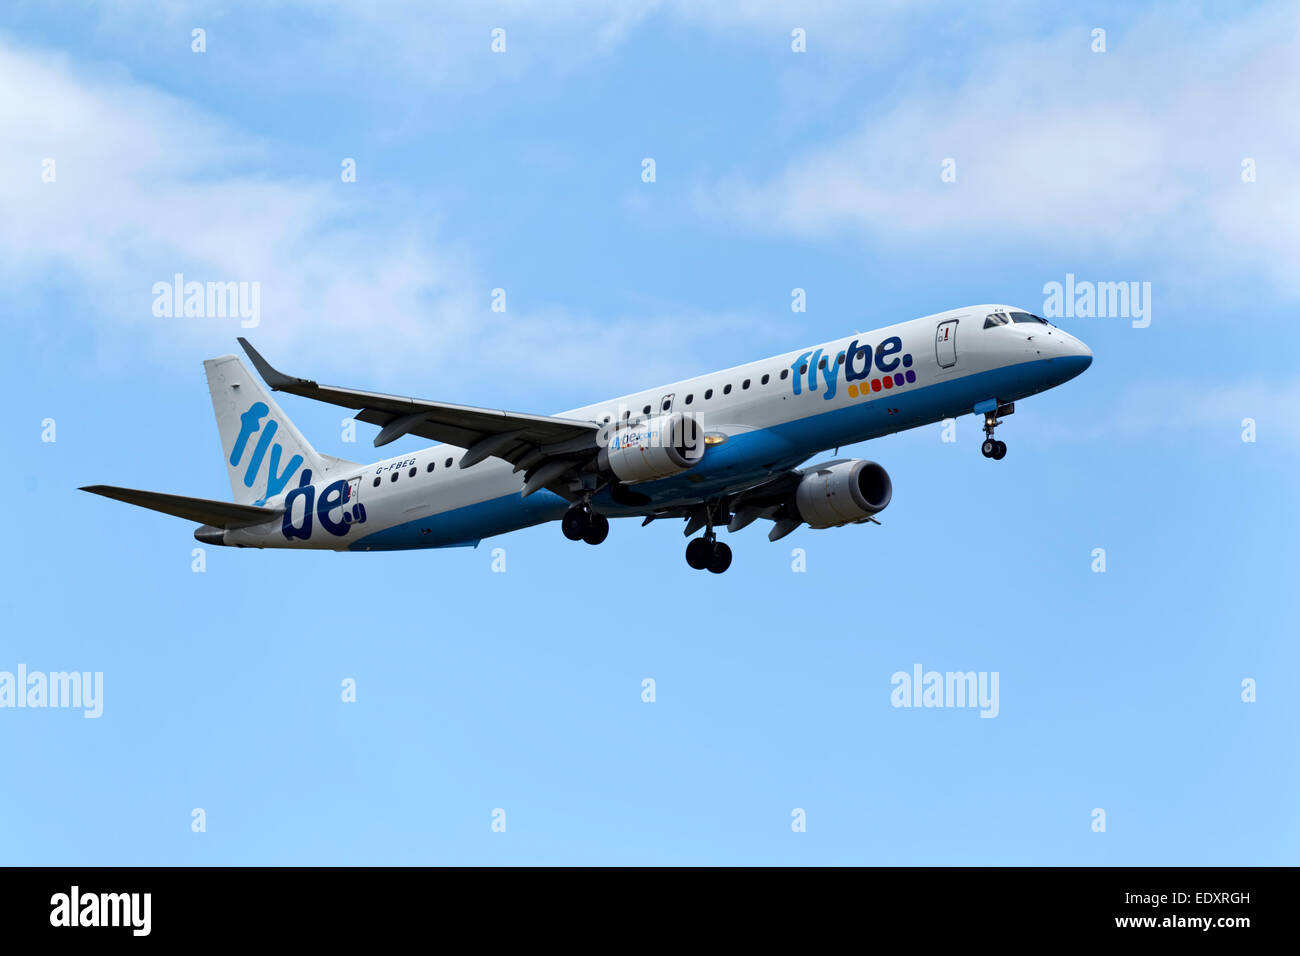 A Flybe Airline Embraer 195 at the Royal International Air Tattoo, RAF Fairford, Gloucestershire, 2011. - Stock Image